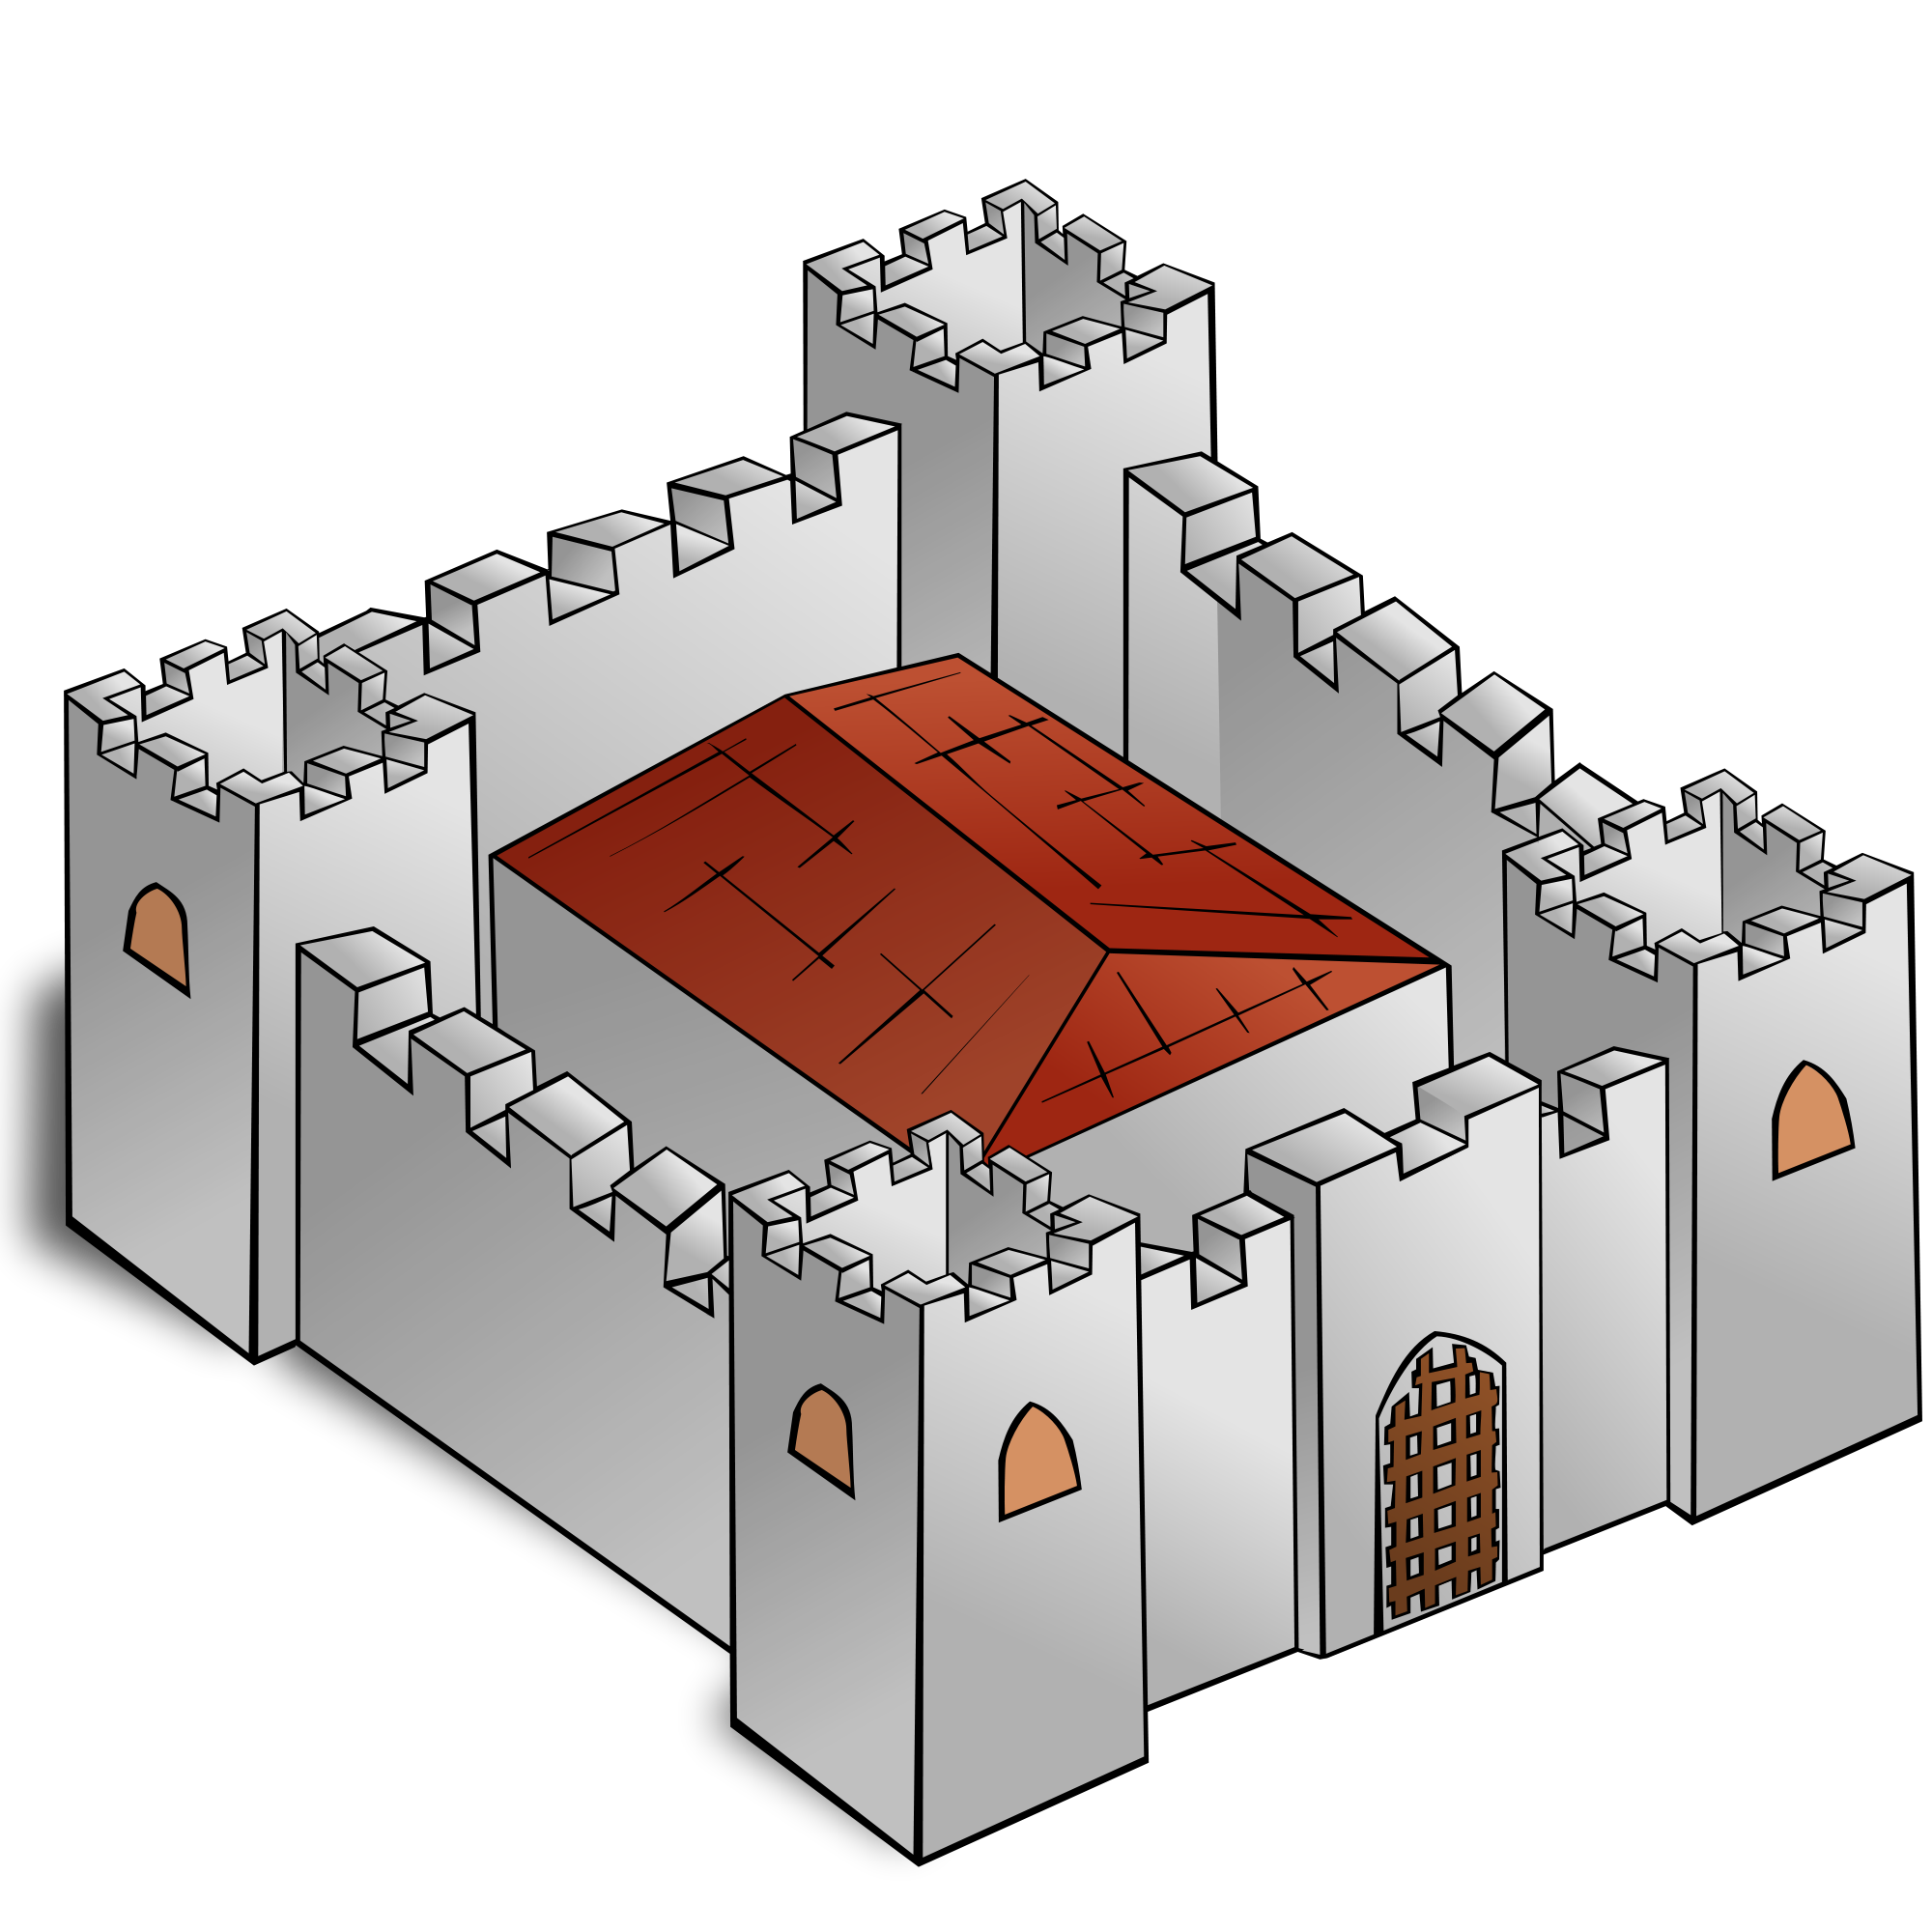 Fortress svg #16, Download drawings